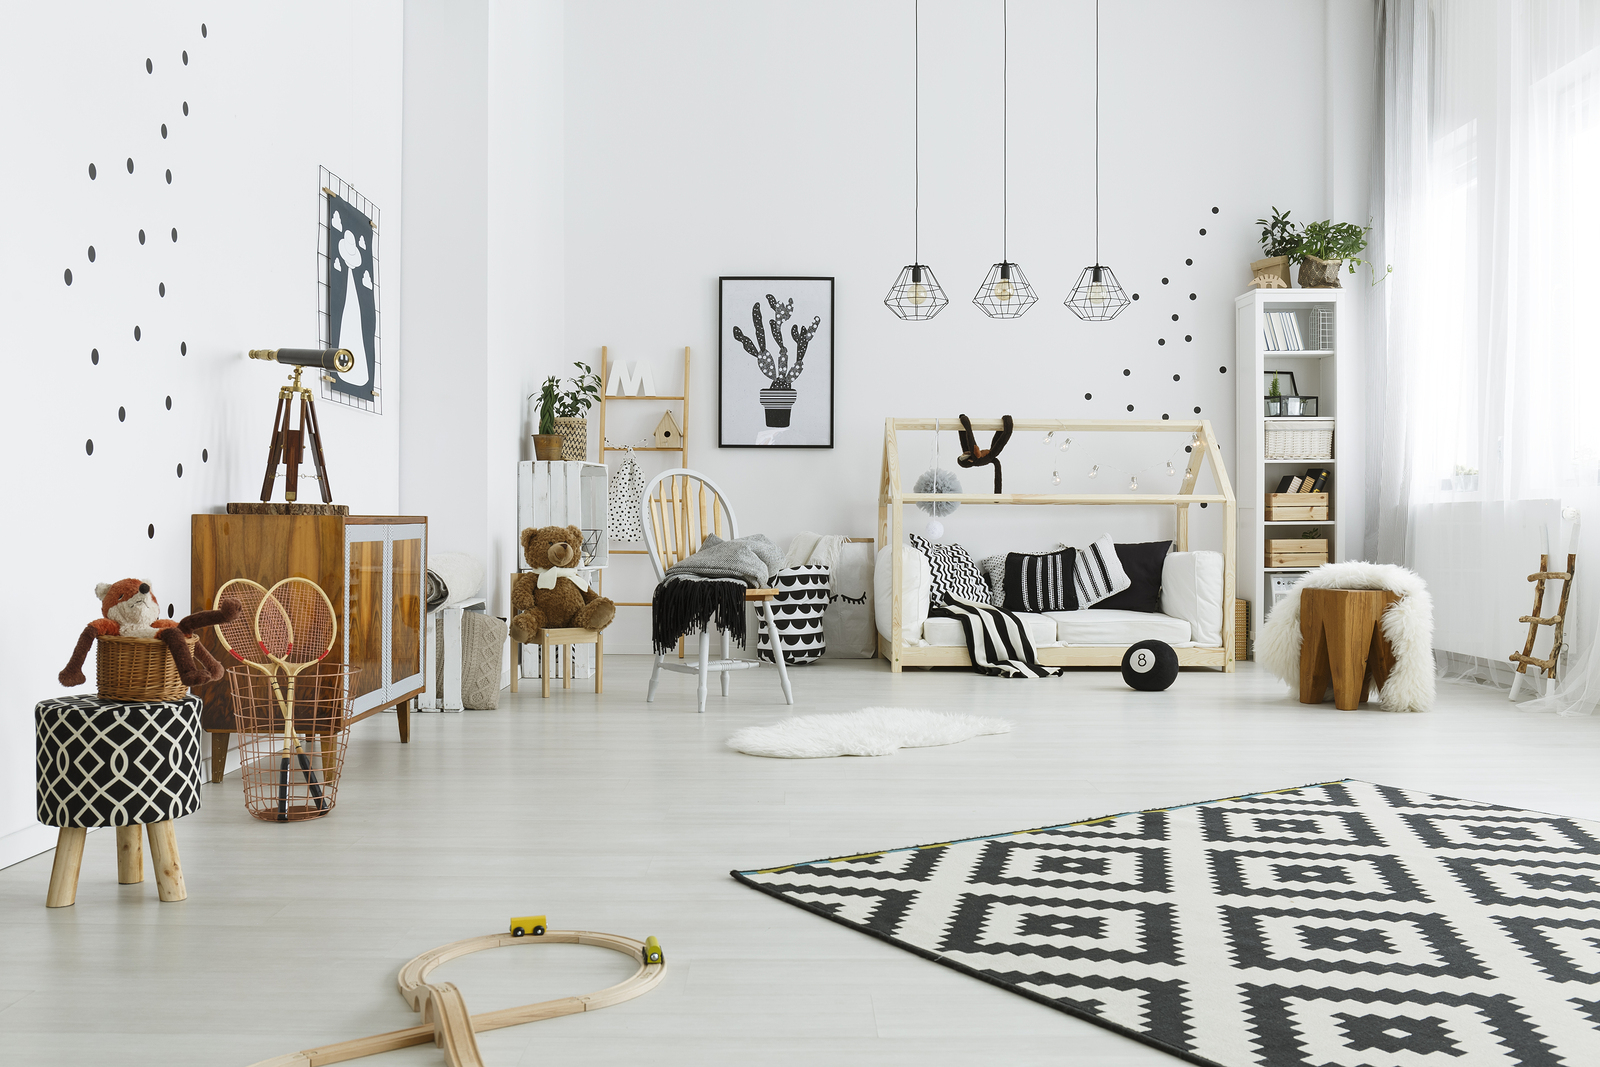 6 Functional Playrooms That Are Cool & Kid-Friendly! Check Out 🧸 playrooms 6 Functional Playrooms That Are Cool & Kid-Friendly! Check Out 🧸 5 5